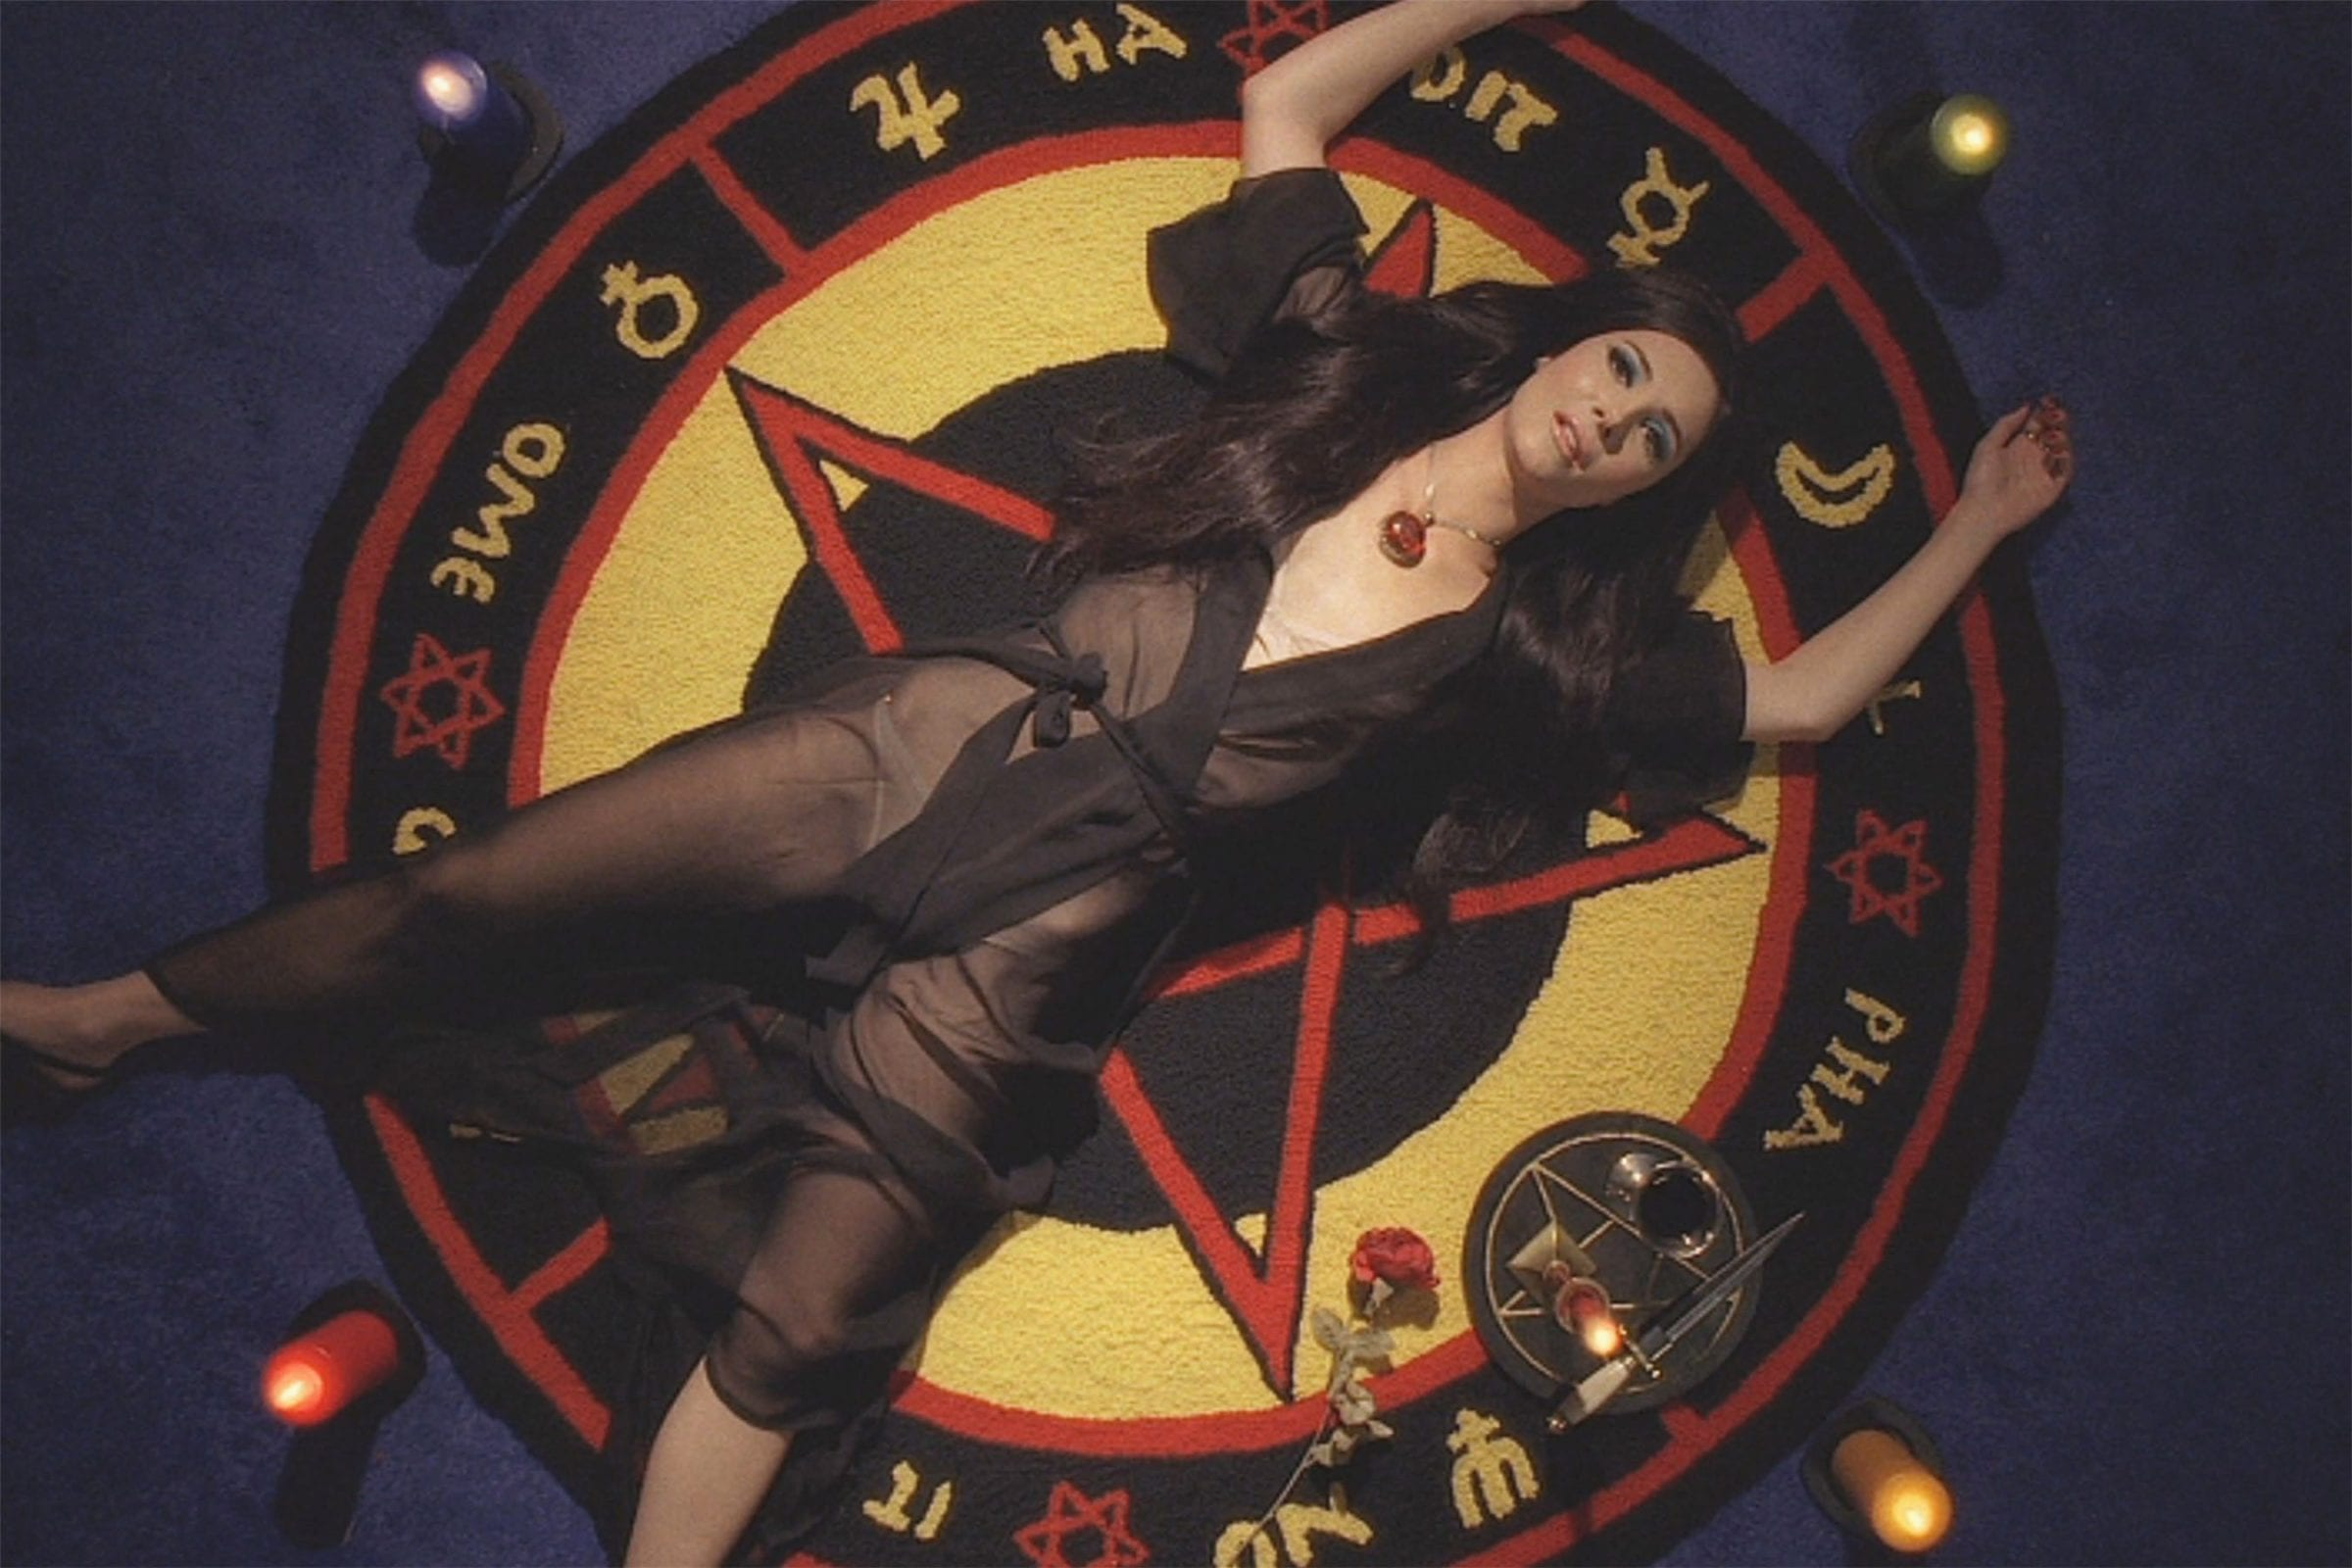 Anna Biller wrote, directed and very carefully constructed the universe where 'The Love Witch' resides, a painstaking seven-year journey.